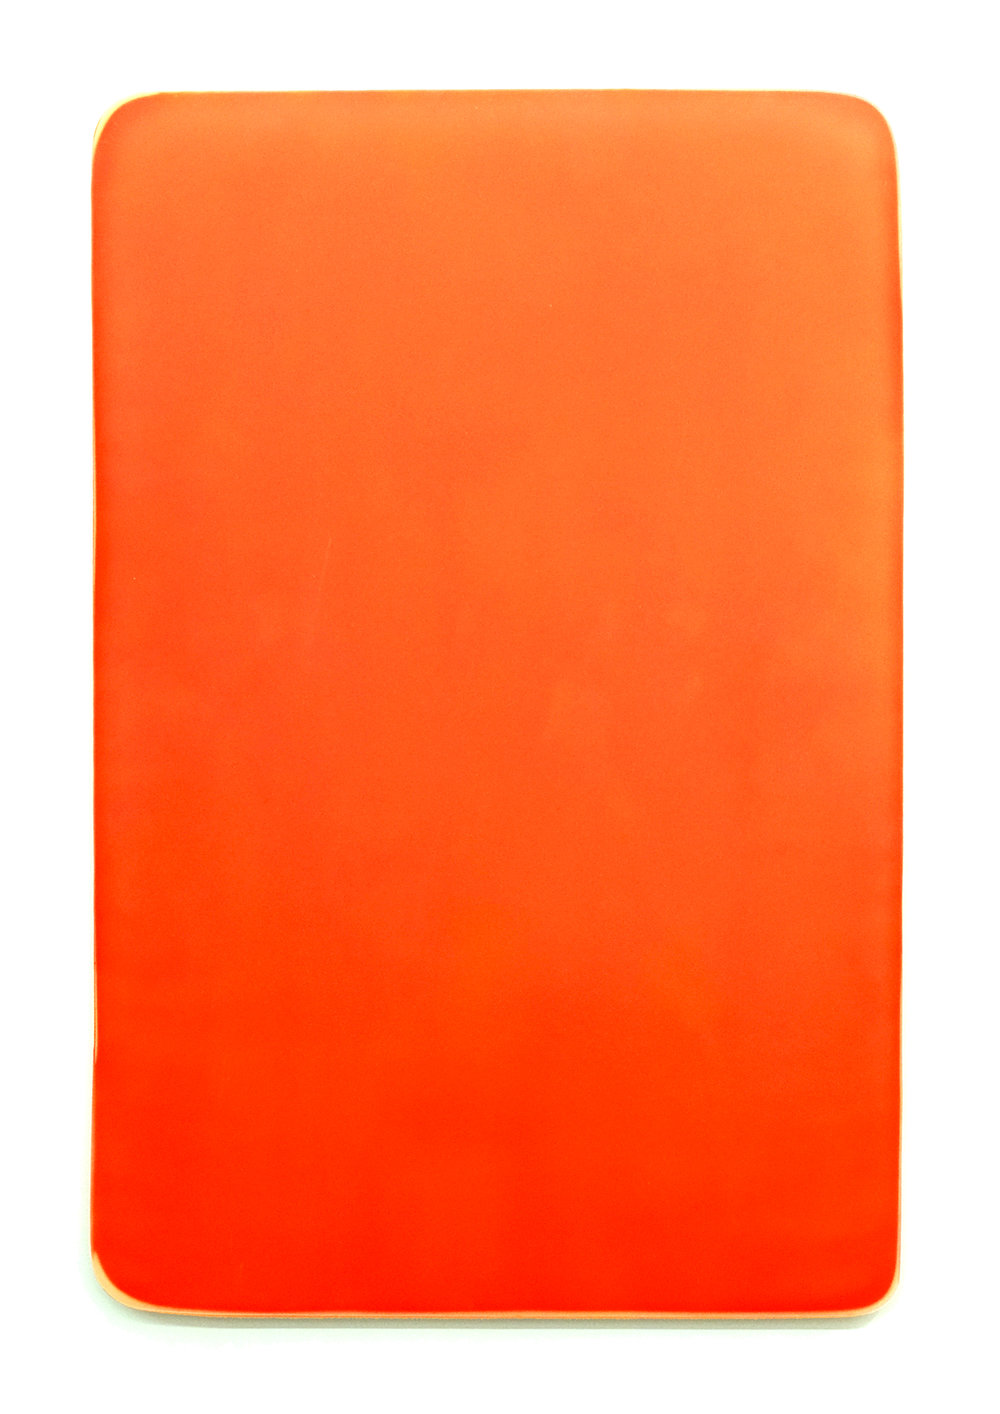 "BUY OMOXICILLIN ONLINE WITHOUT A PRESCRIPTION   Phosphorescent pigment, high density foam, acrylic paint, UV  protected epoxy, vanish  20"" x 30"" 2013"